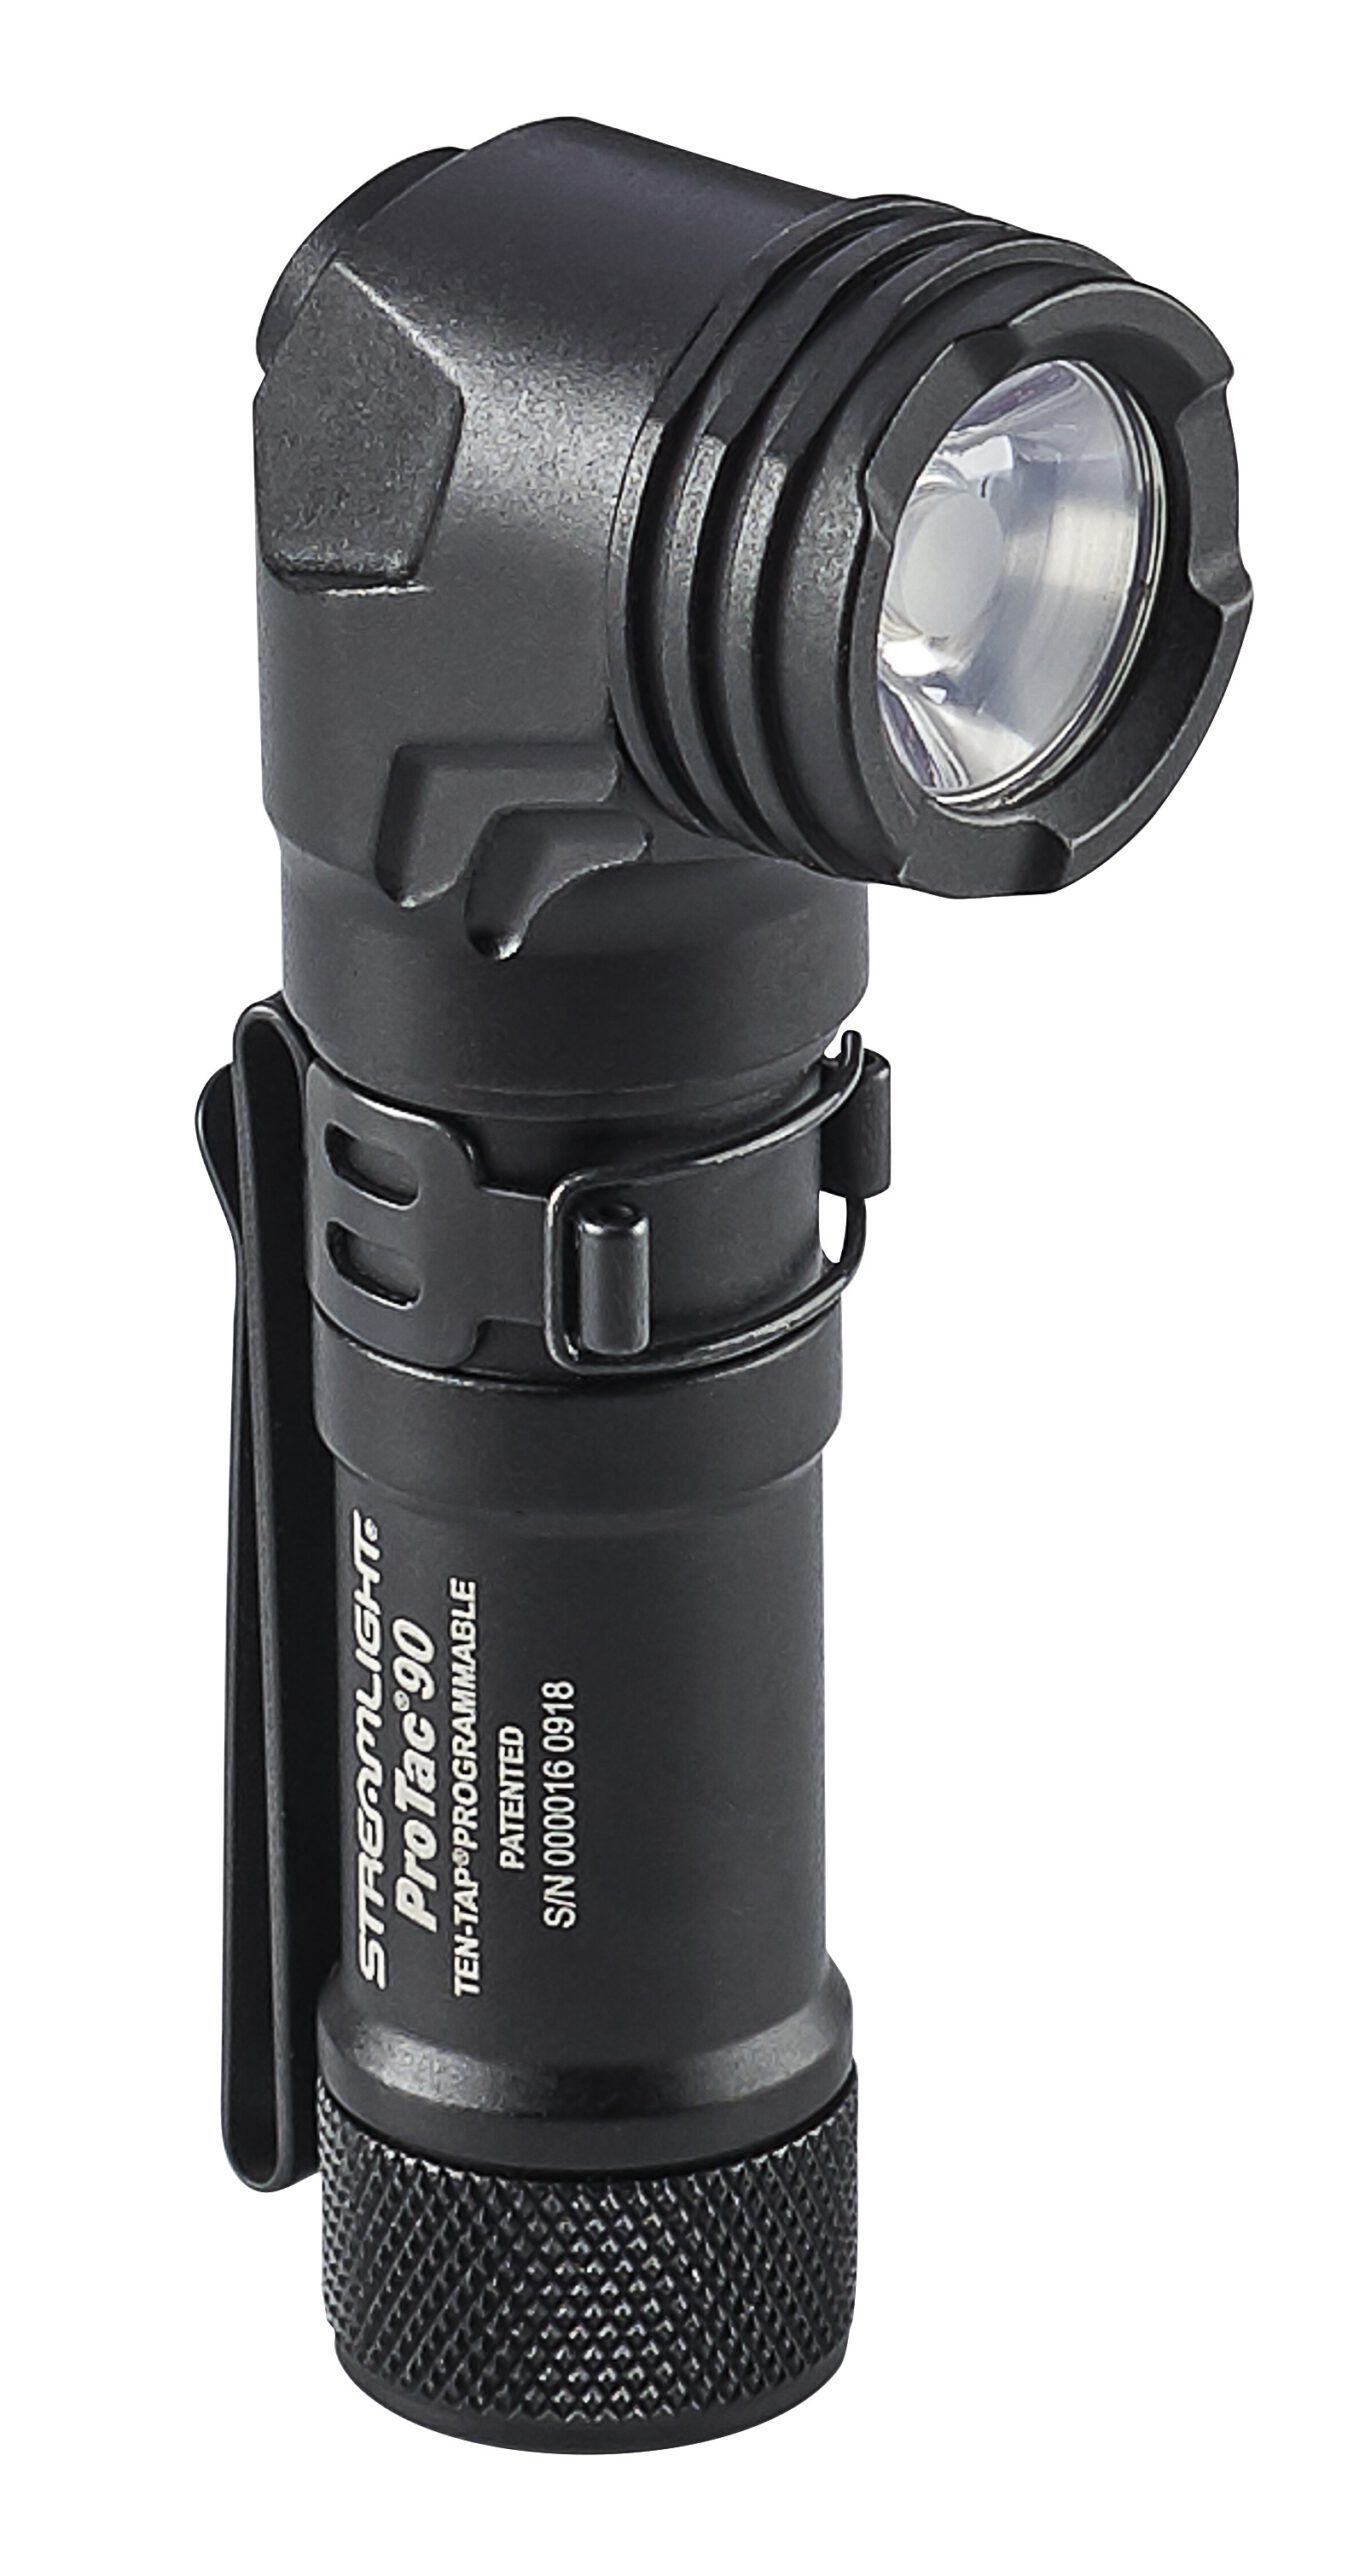 The ProTac 90 is a superb bright, ultra-compact, right angle tactical light featuring the convenience of multi fuel technology.